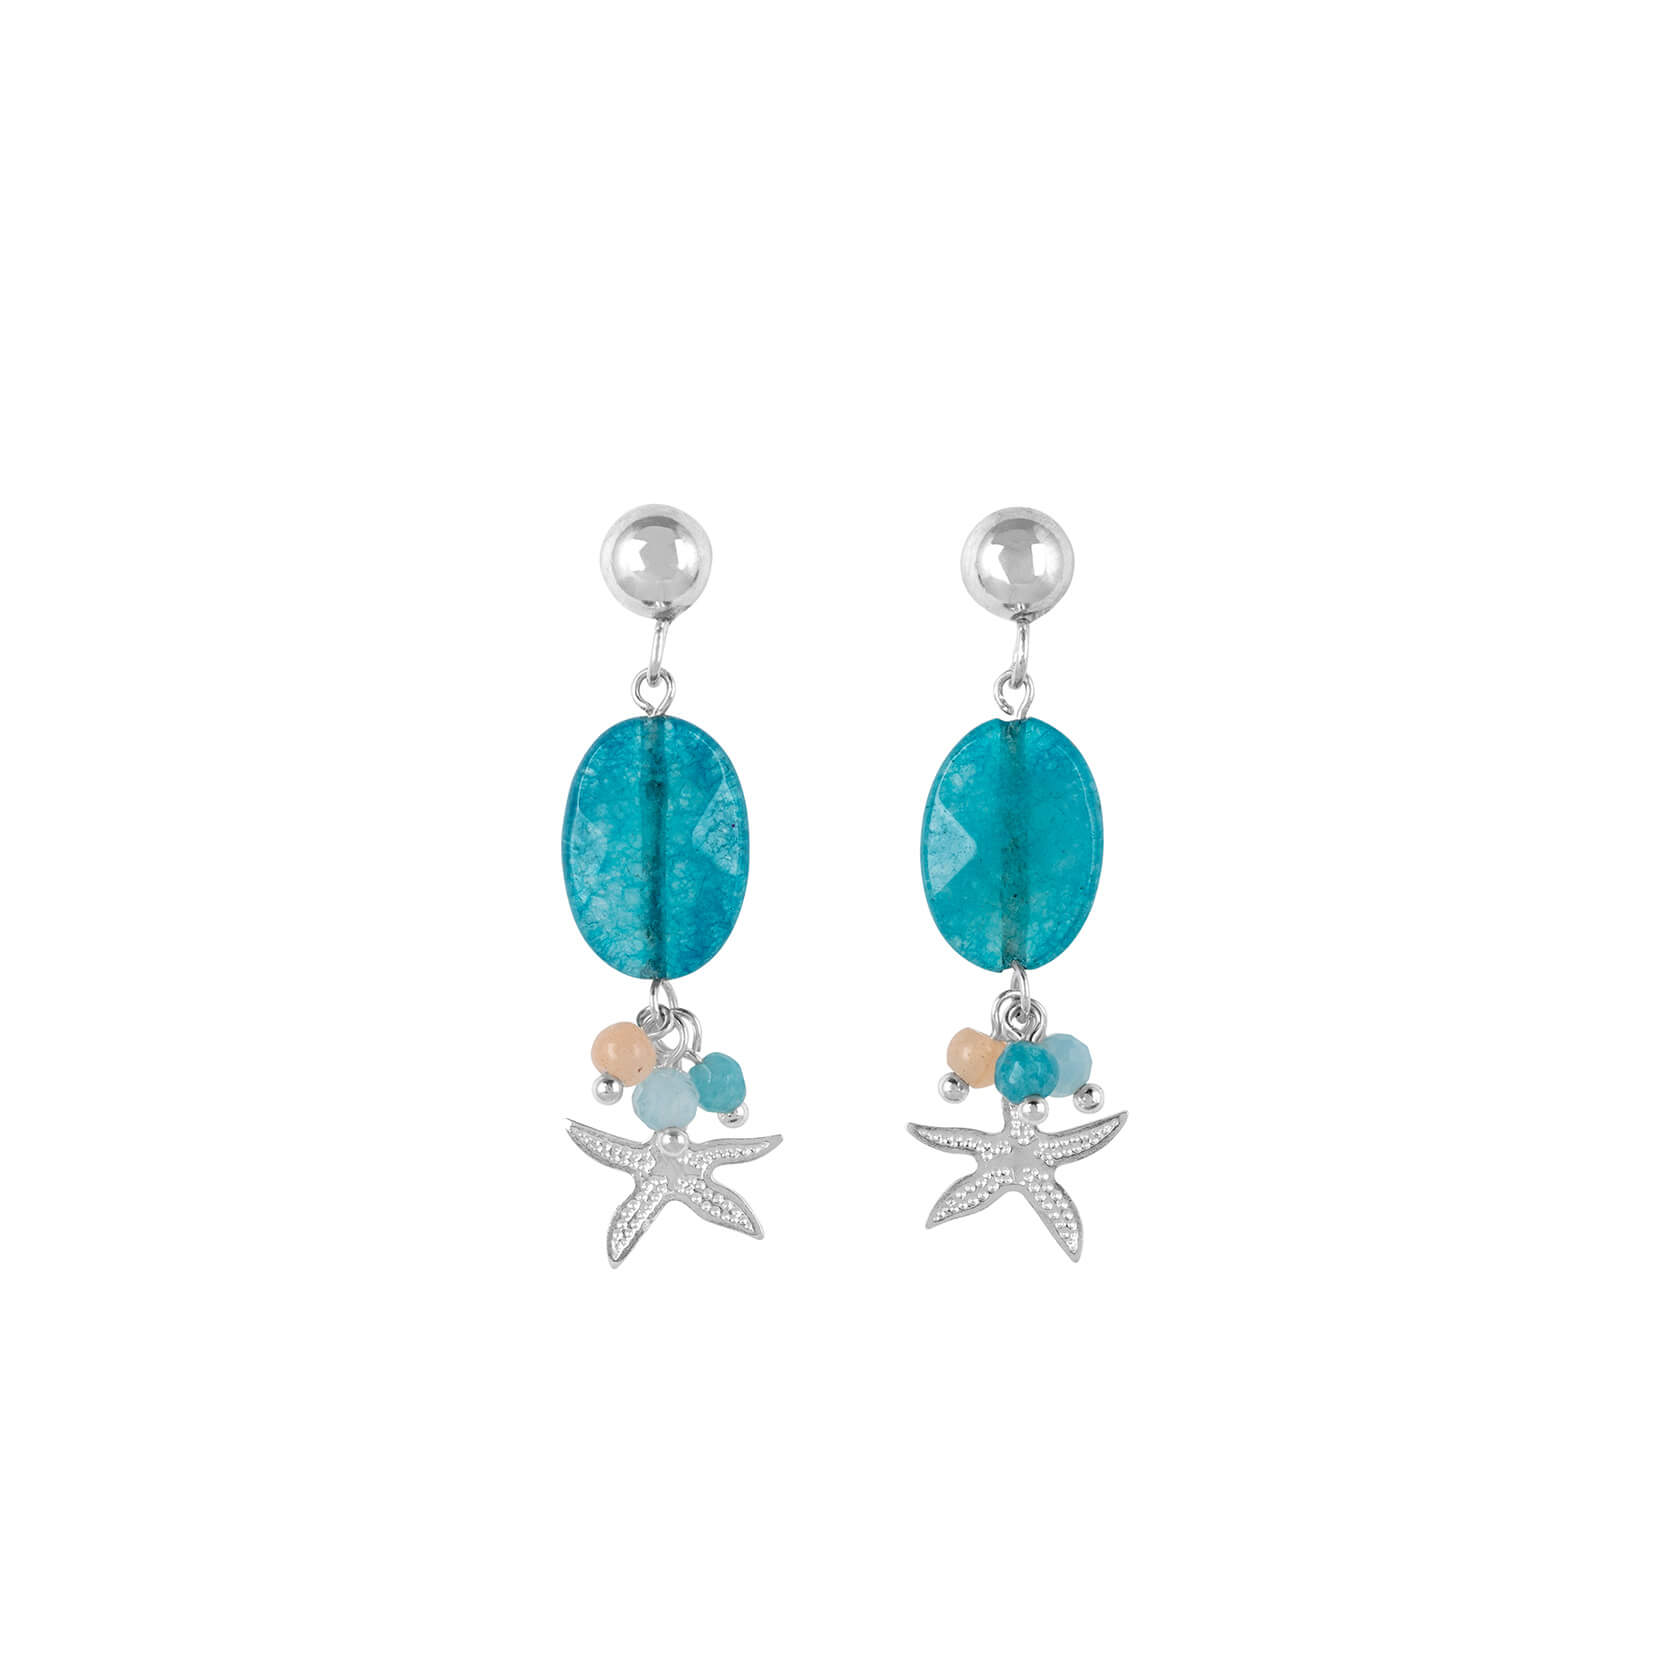 Blue quartz and starfish earrings